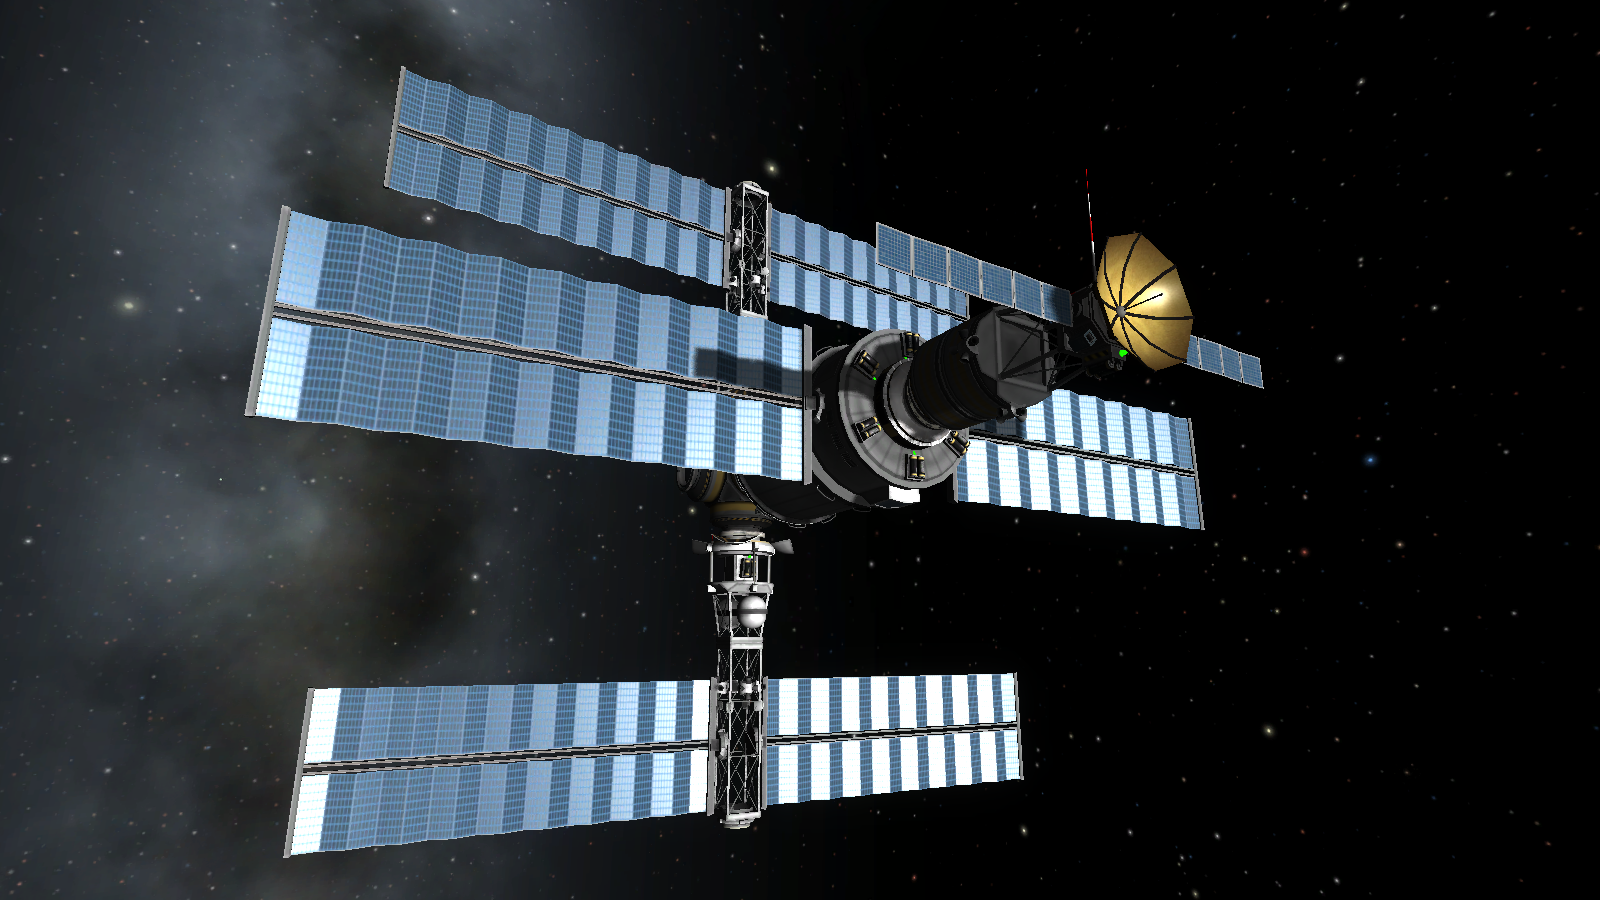 kerbal space program space station - photo #10